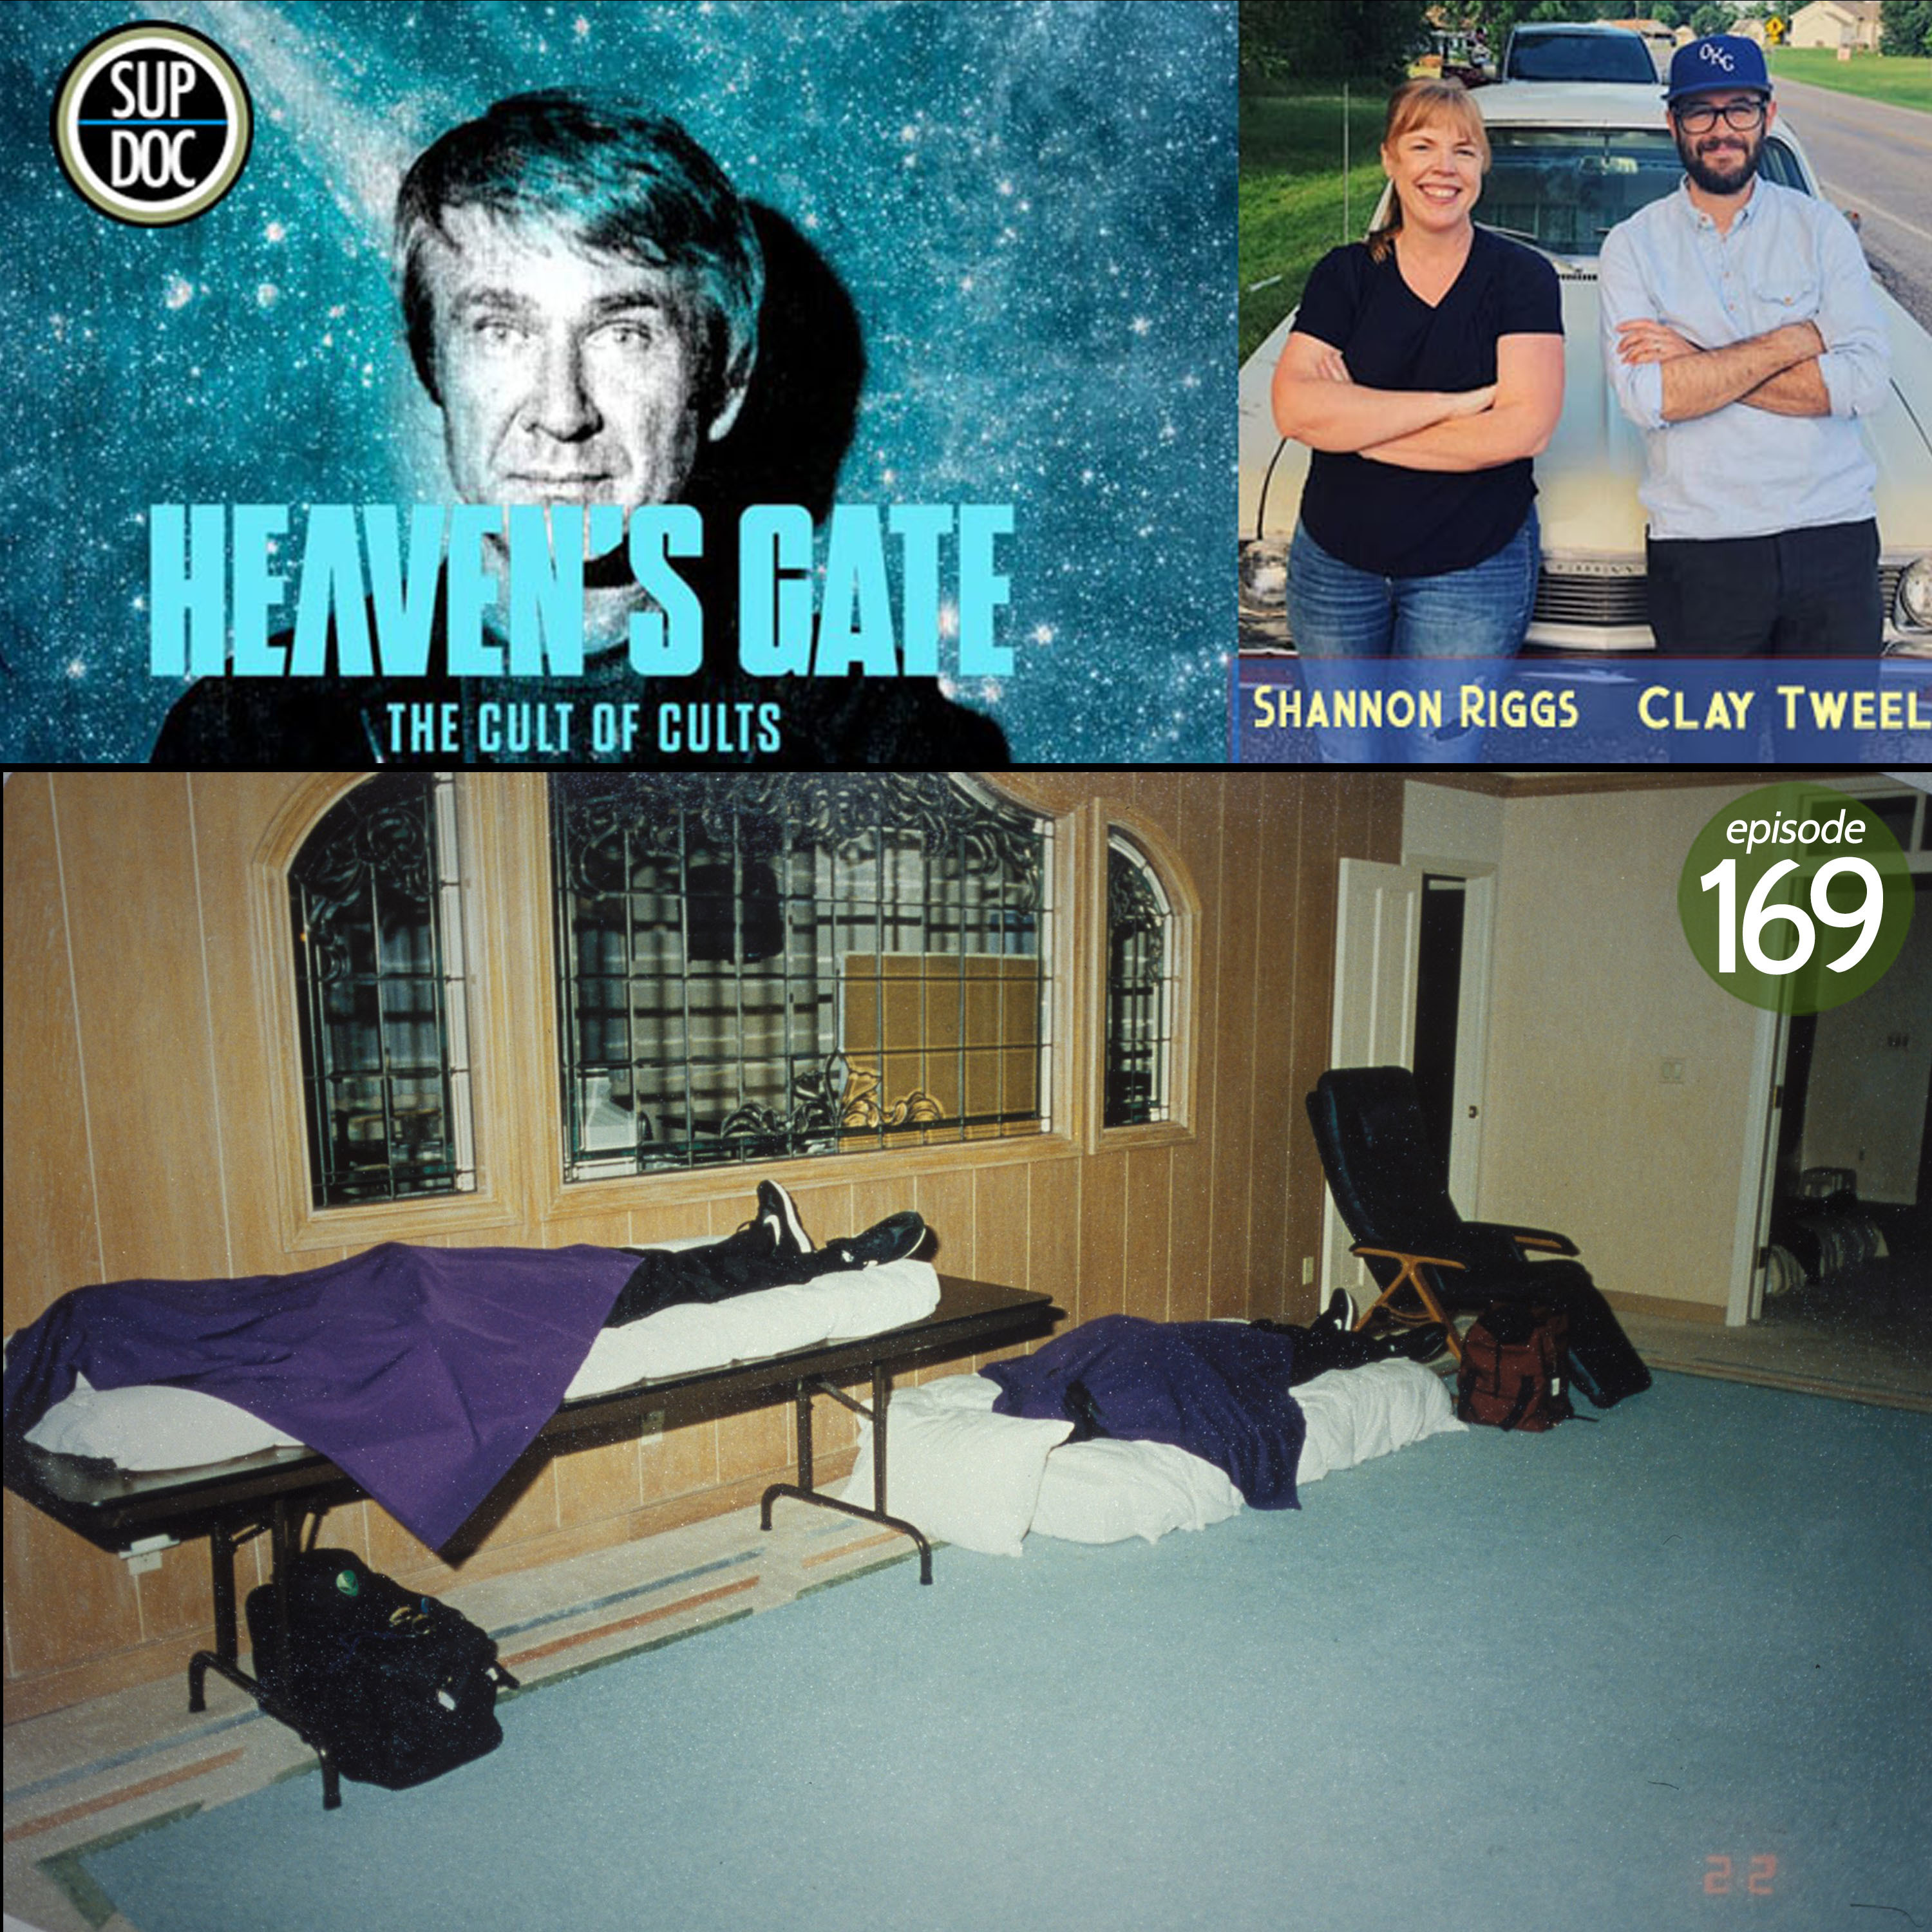 HEAVEN'S GATE: THE CULT OF CULTS director Clay Tweel and producer Shannon Riggs